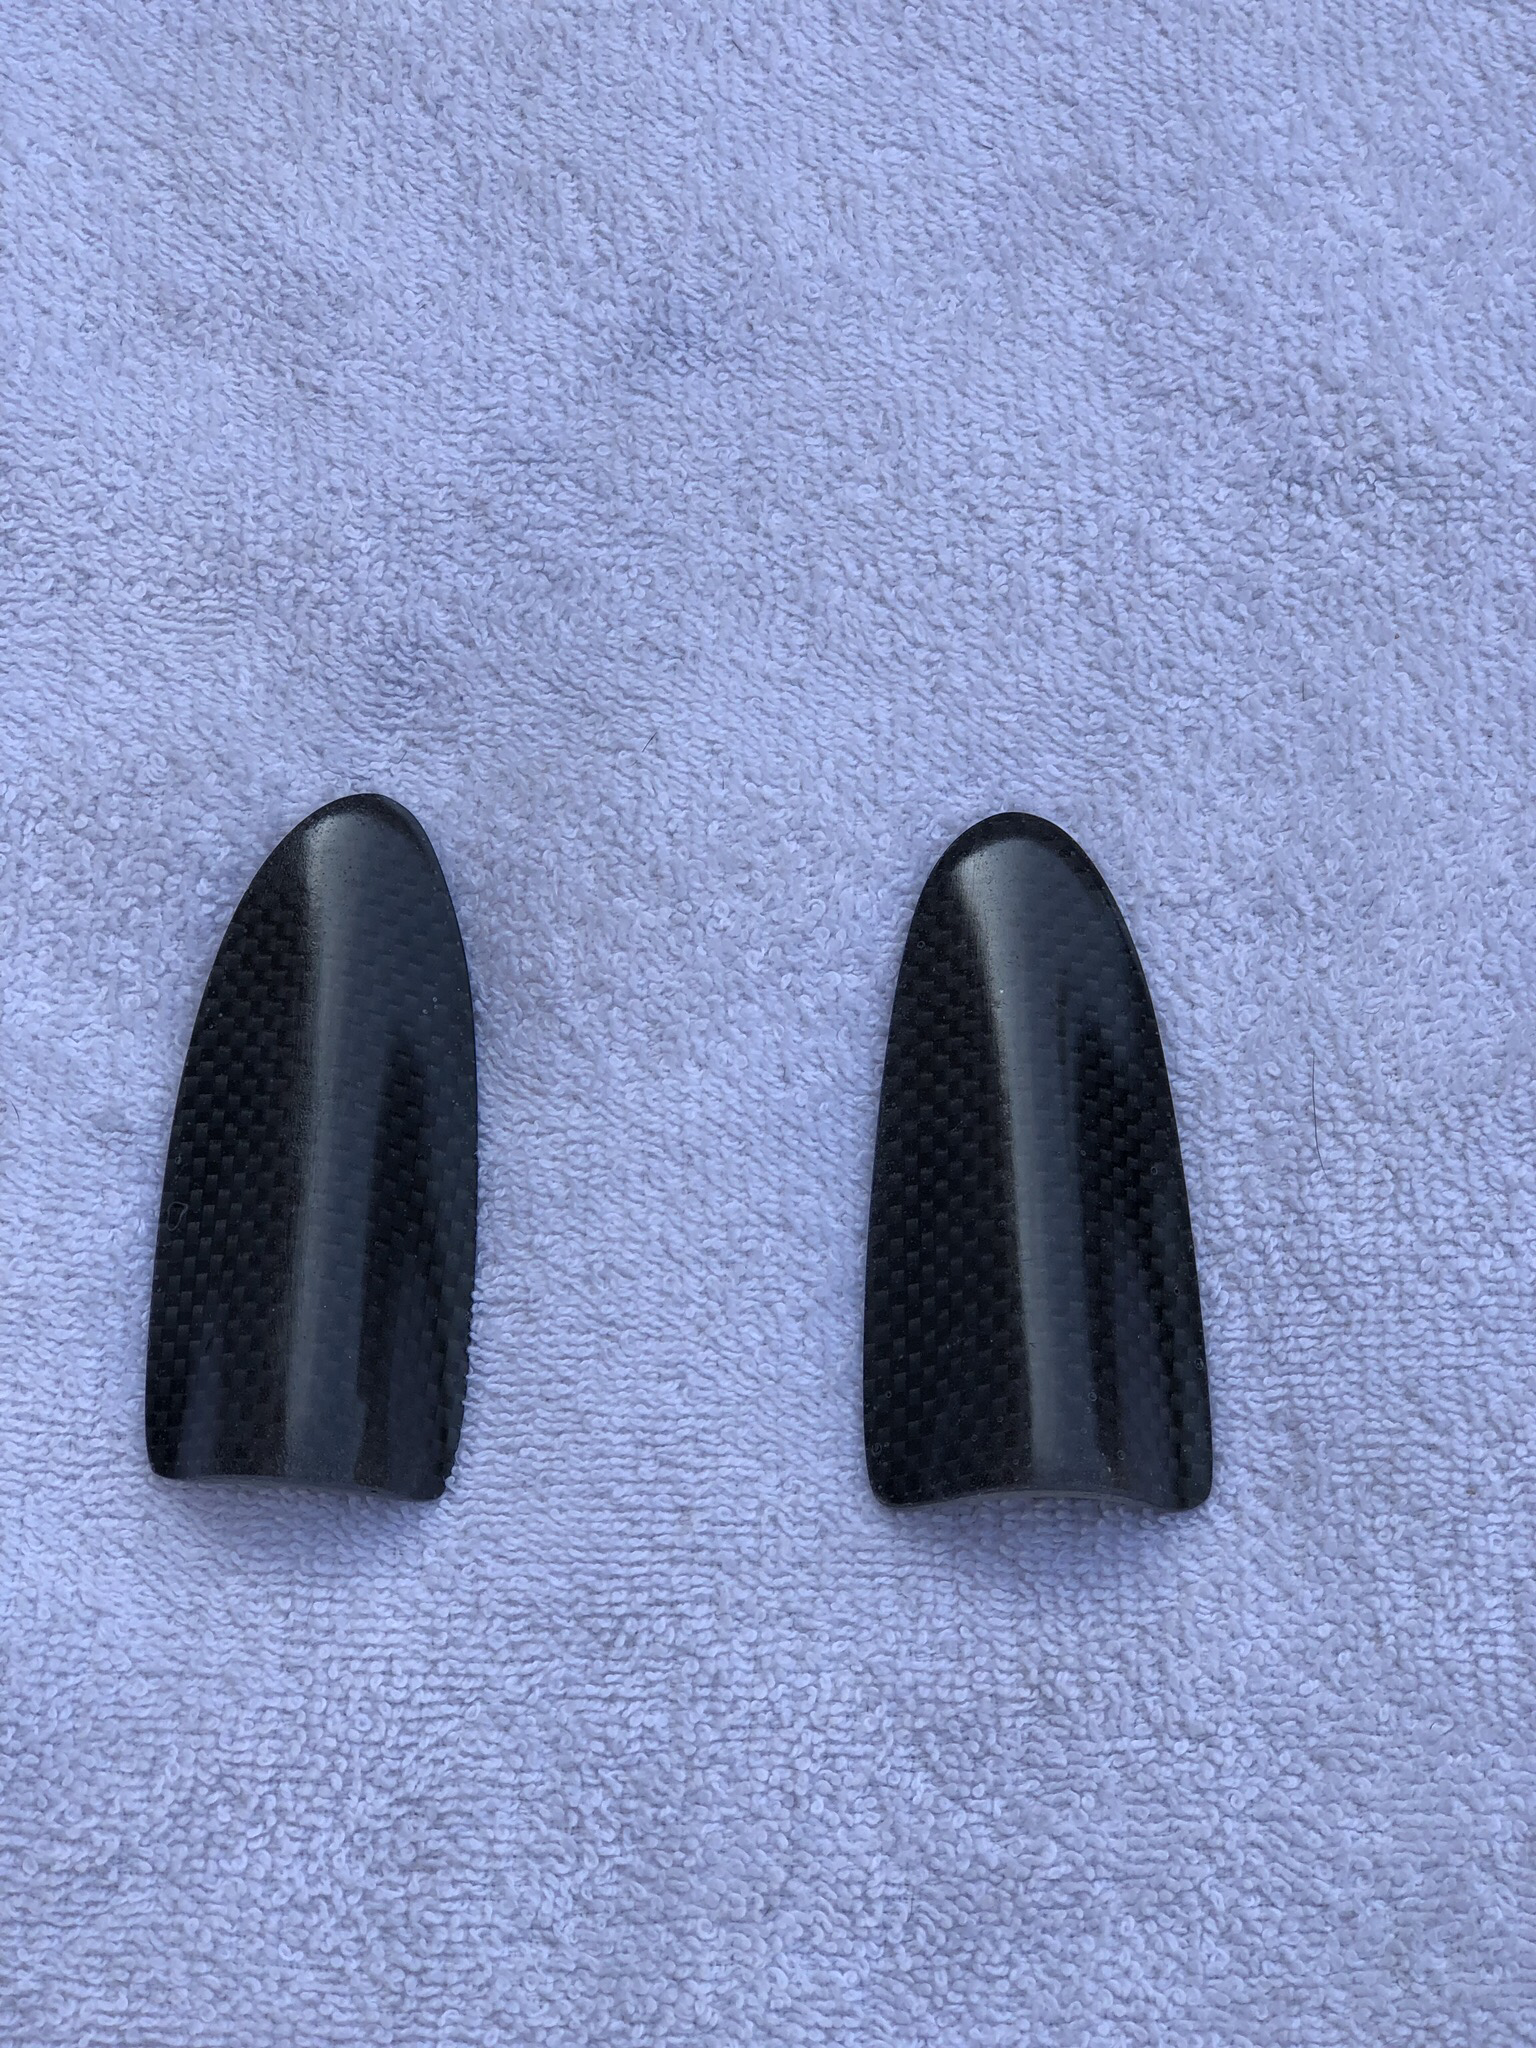 Carbon Venturi covers 00203